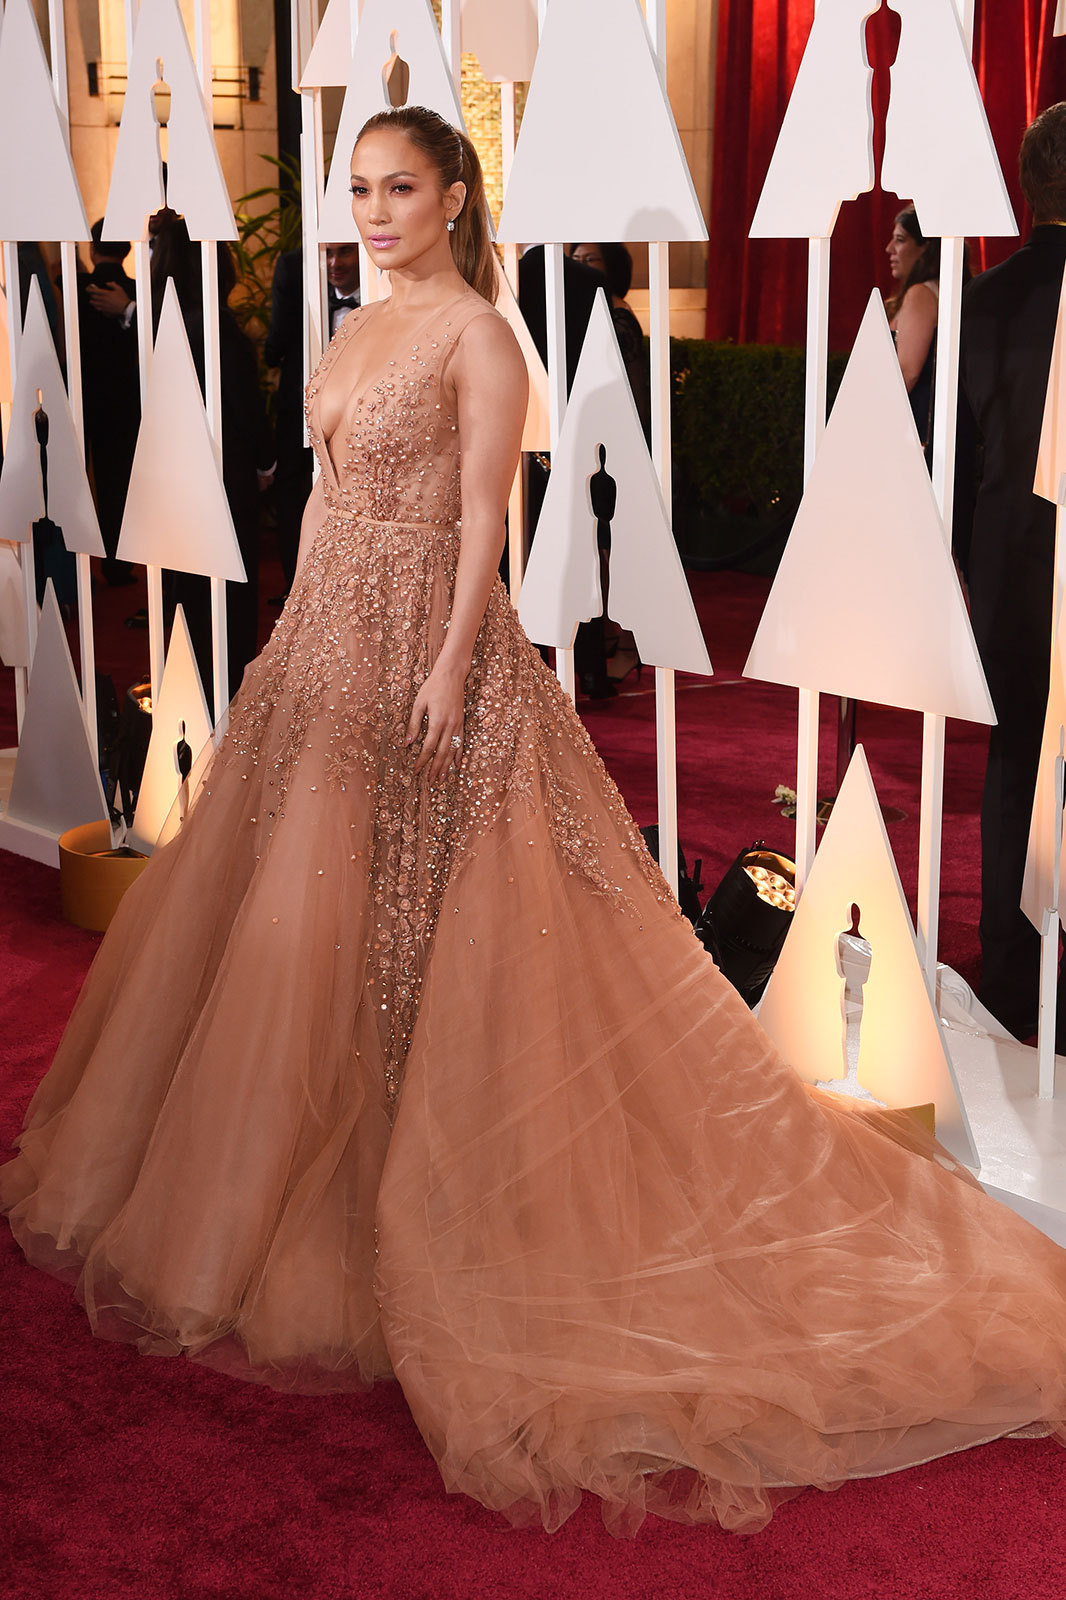 Jennifer Lopez at the 2015 Oscars // www.brokeandchic.com